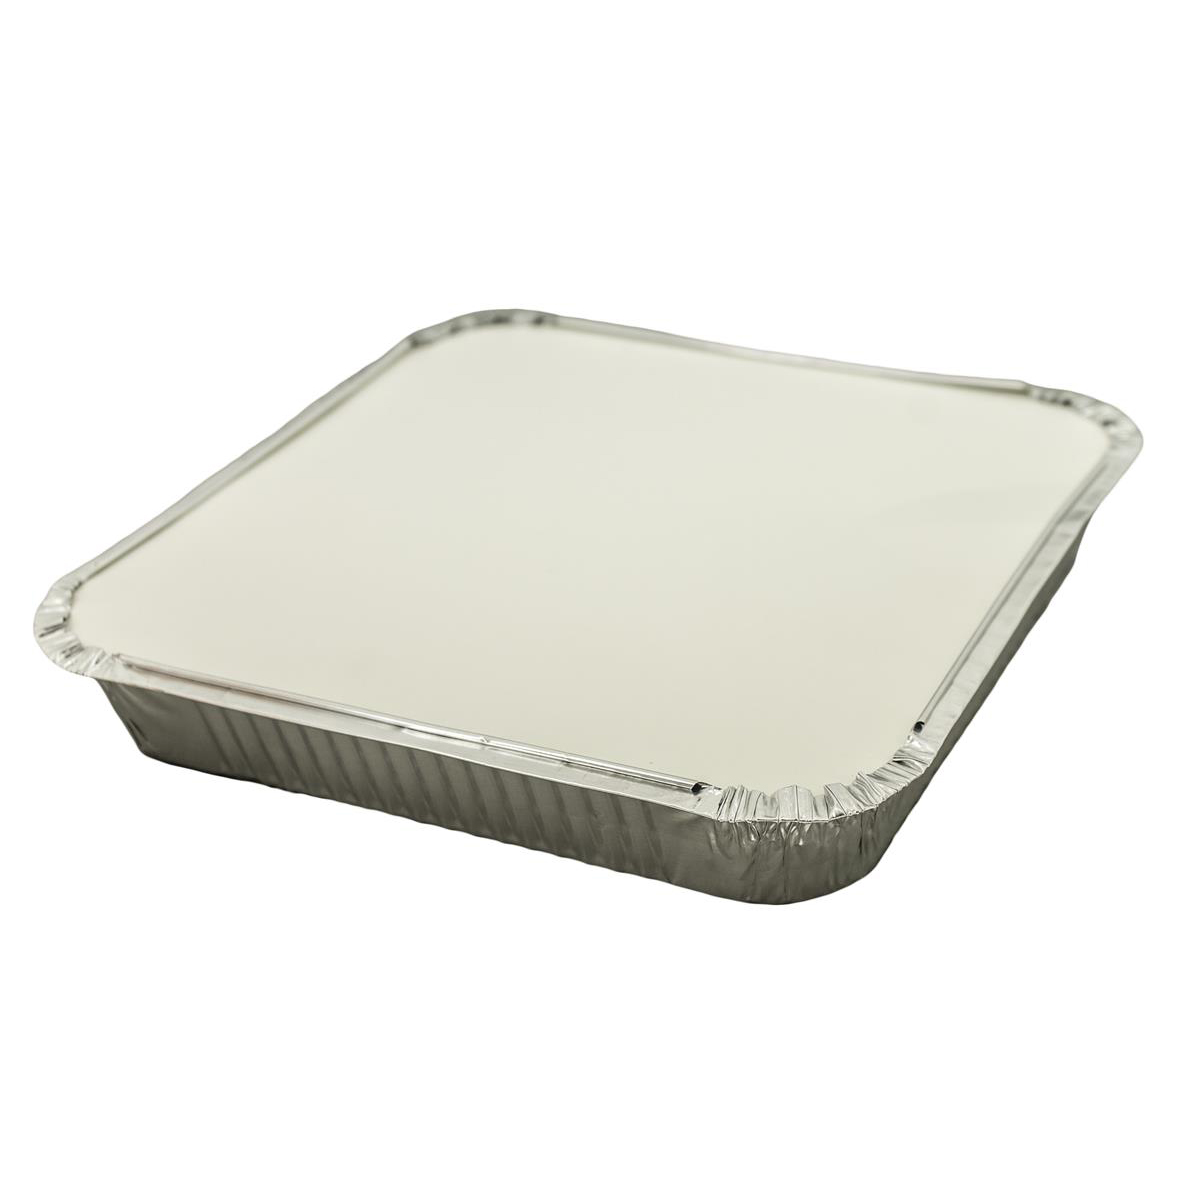 Caterpack Foil Food Container with Lid W230xD230mm Ref 03882 Pack 10